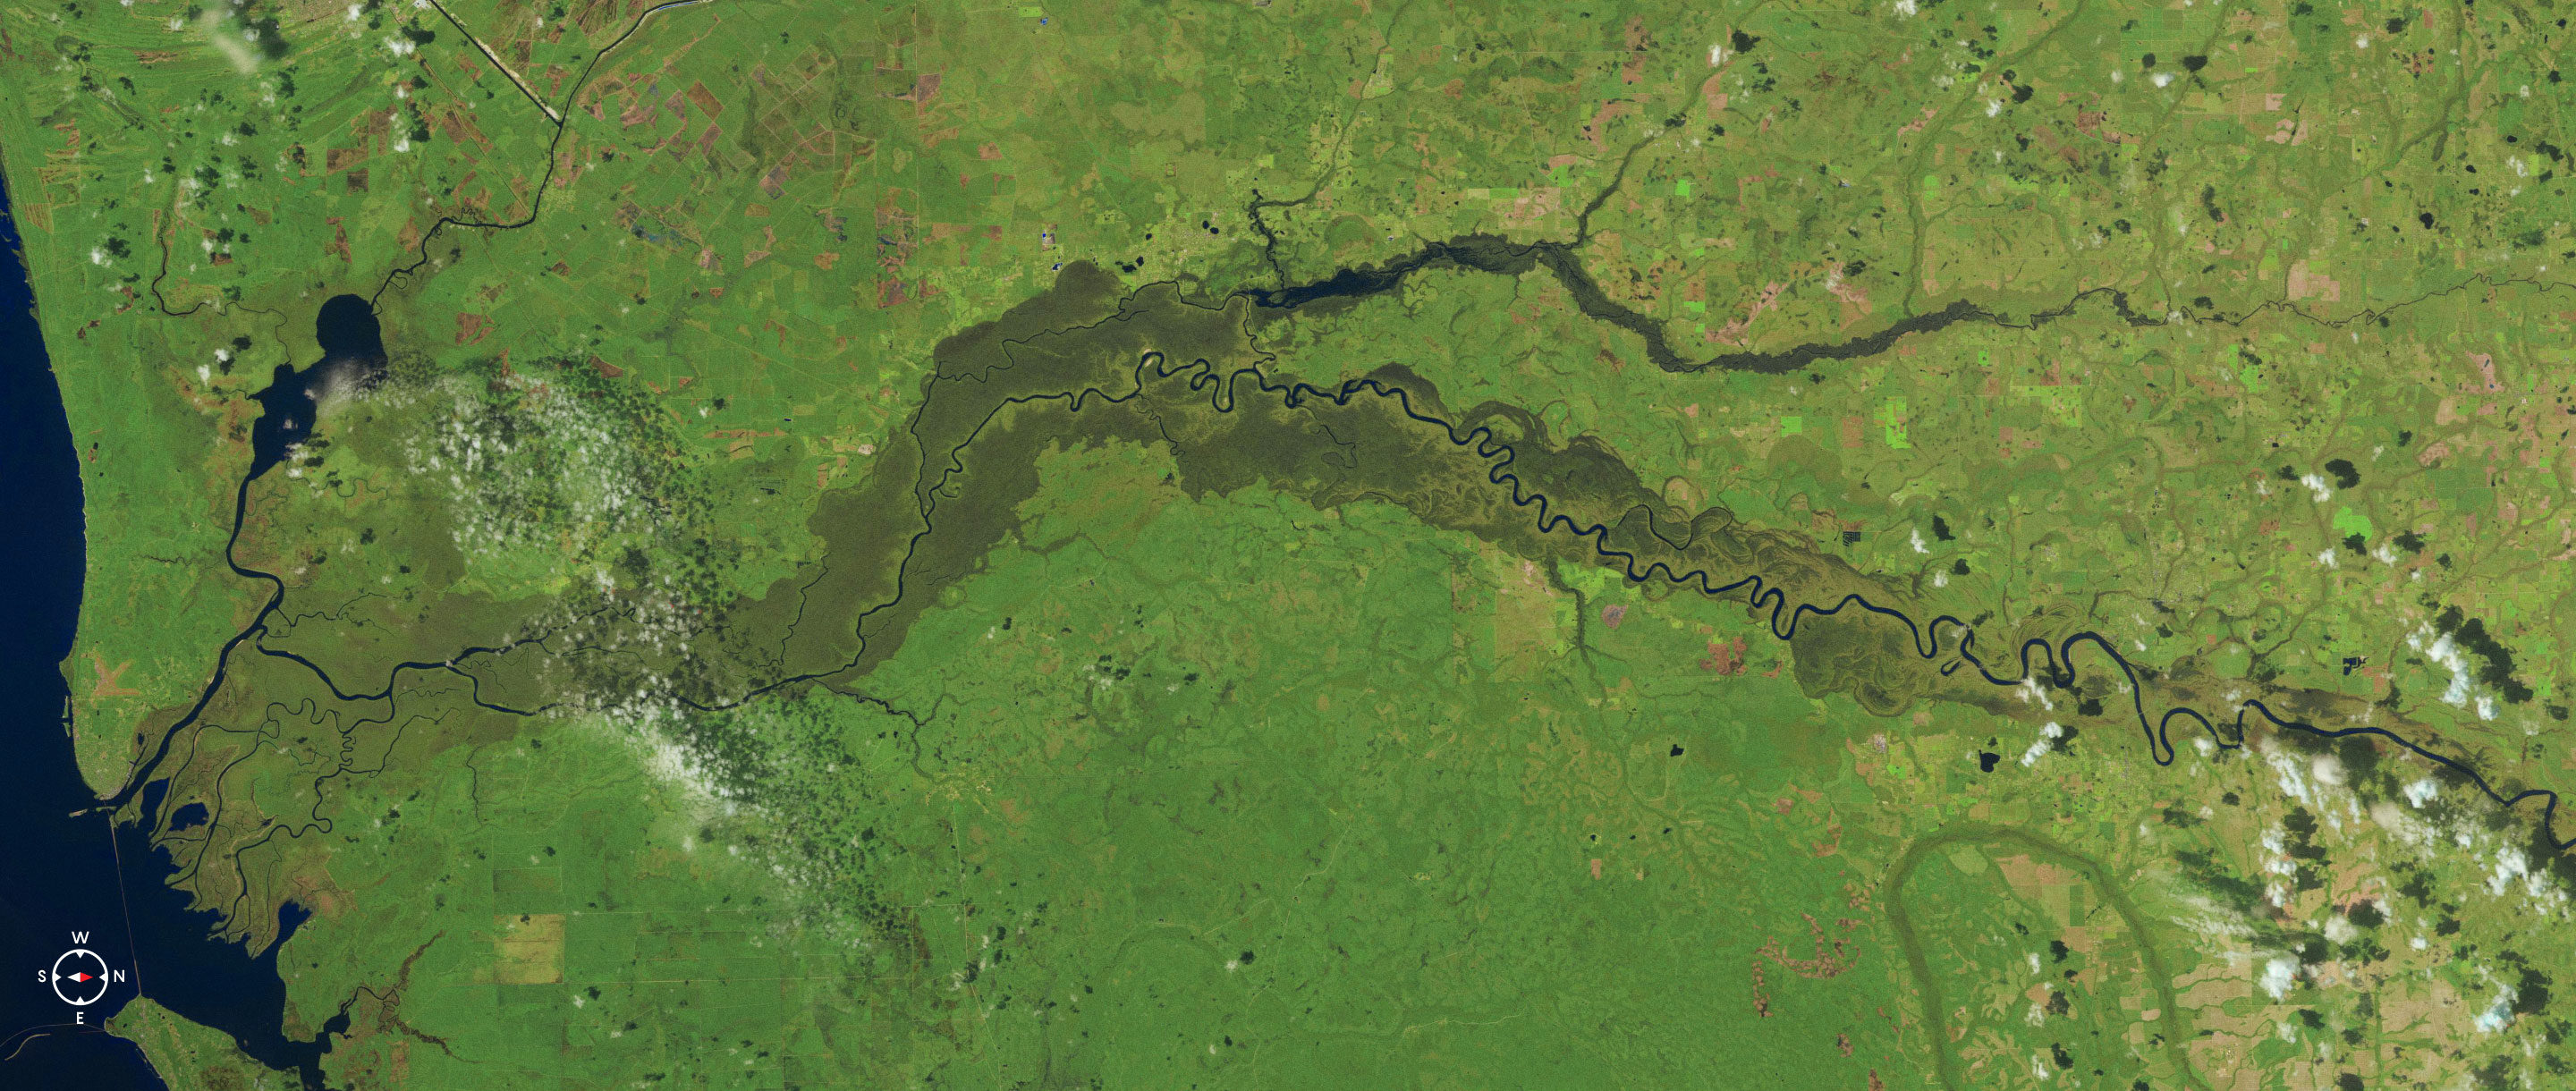 Satellite photo of the Apalachicola River